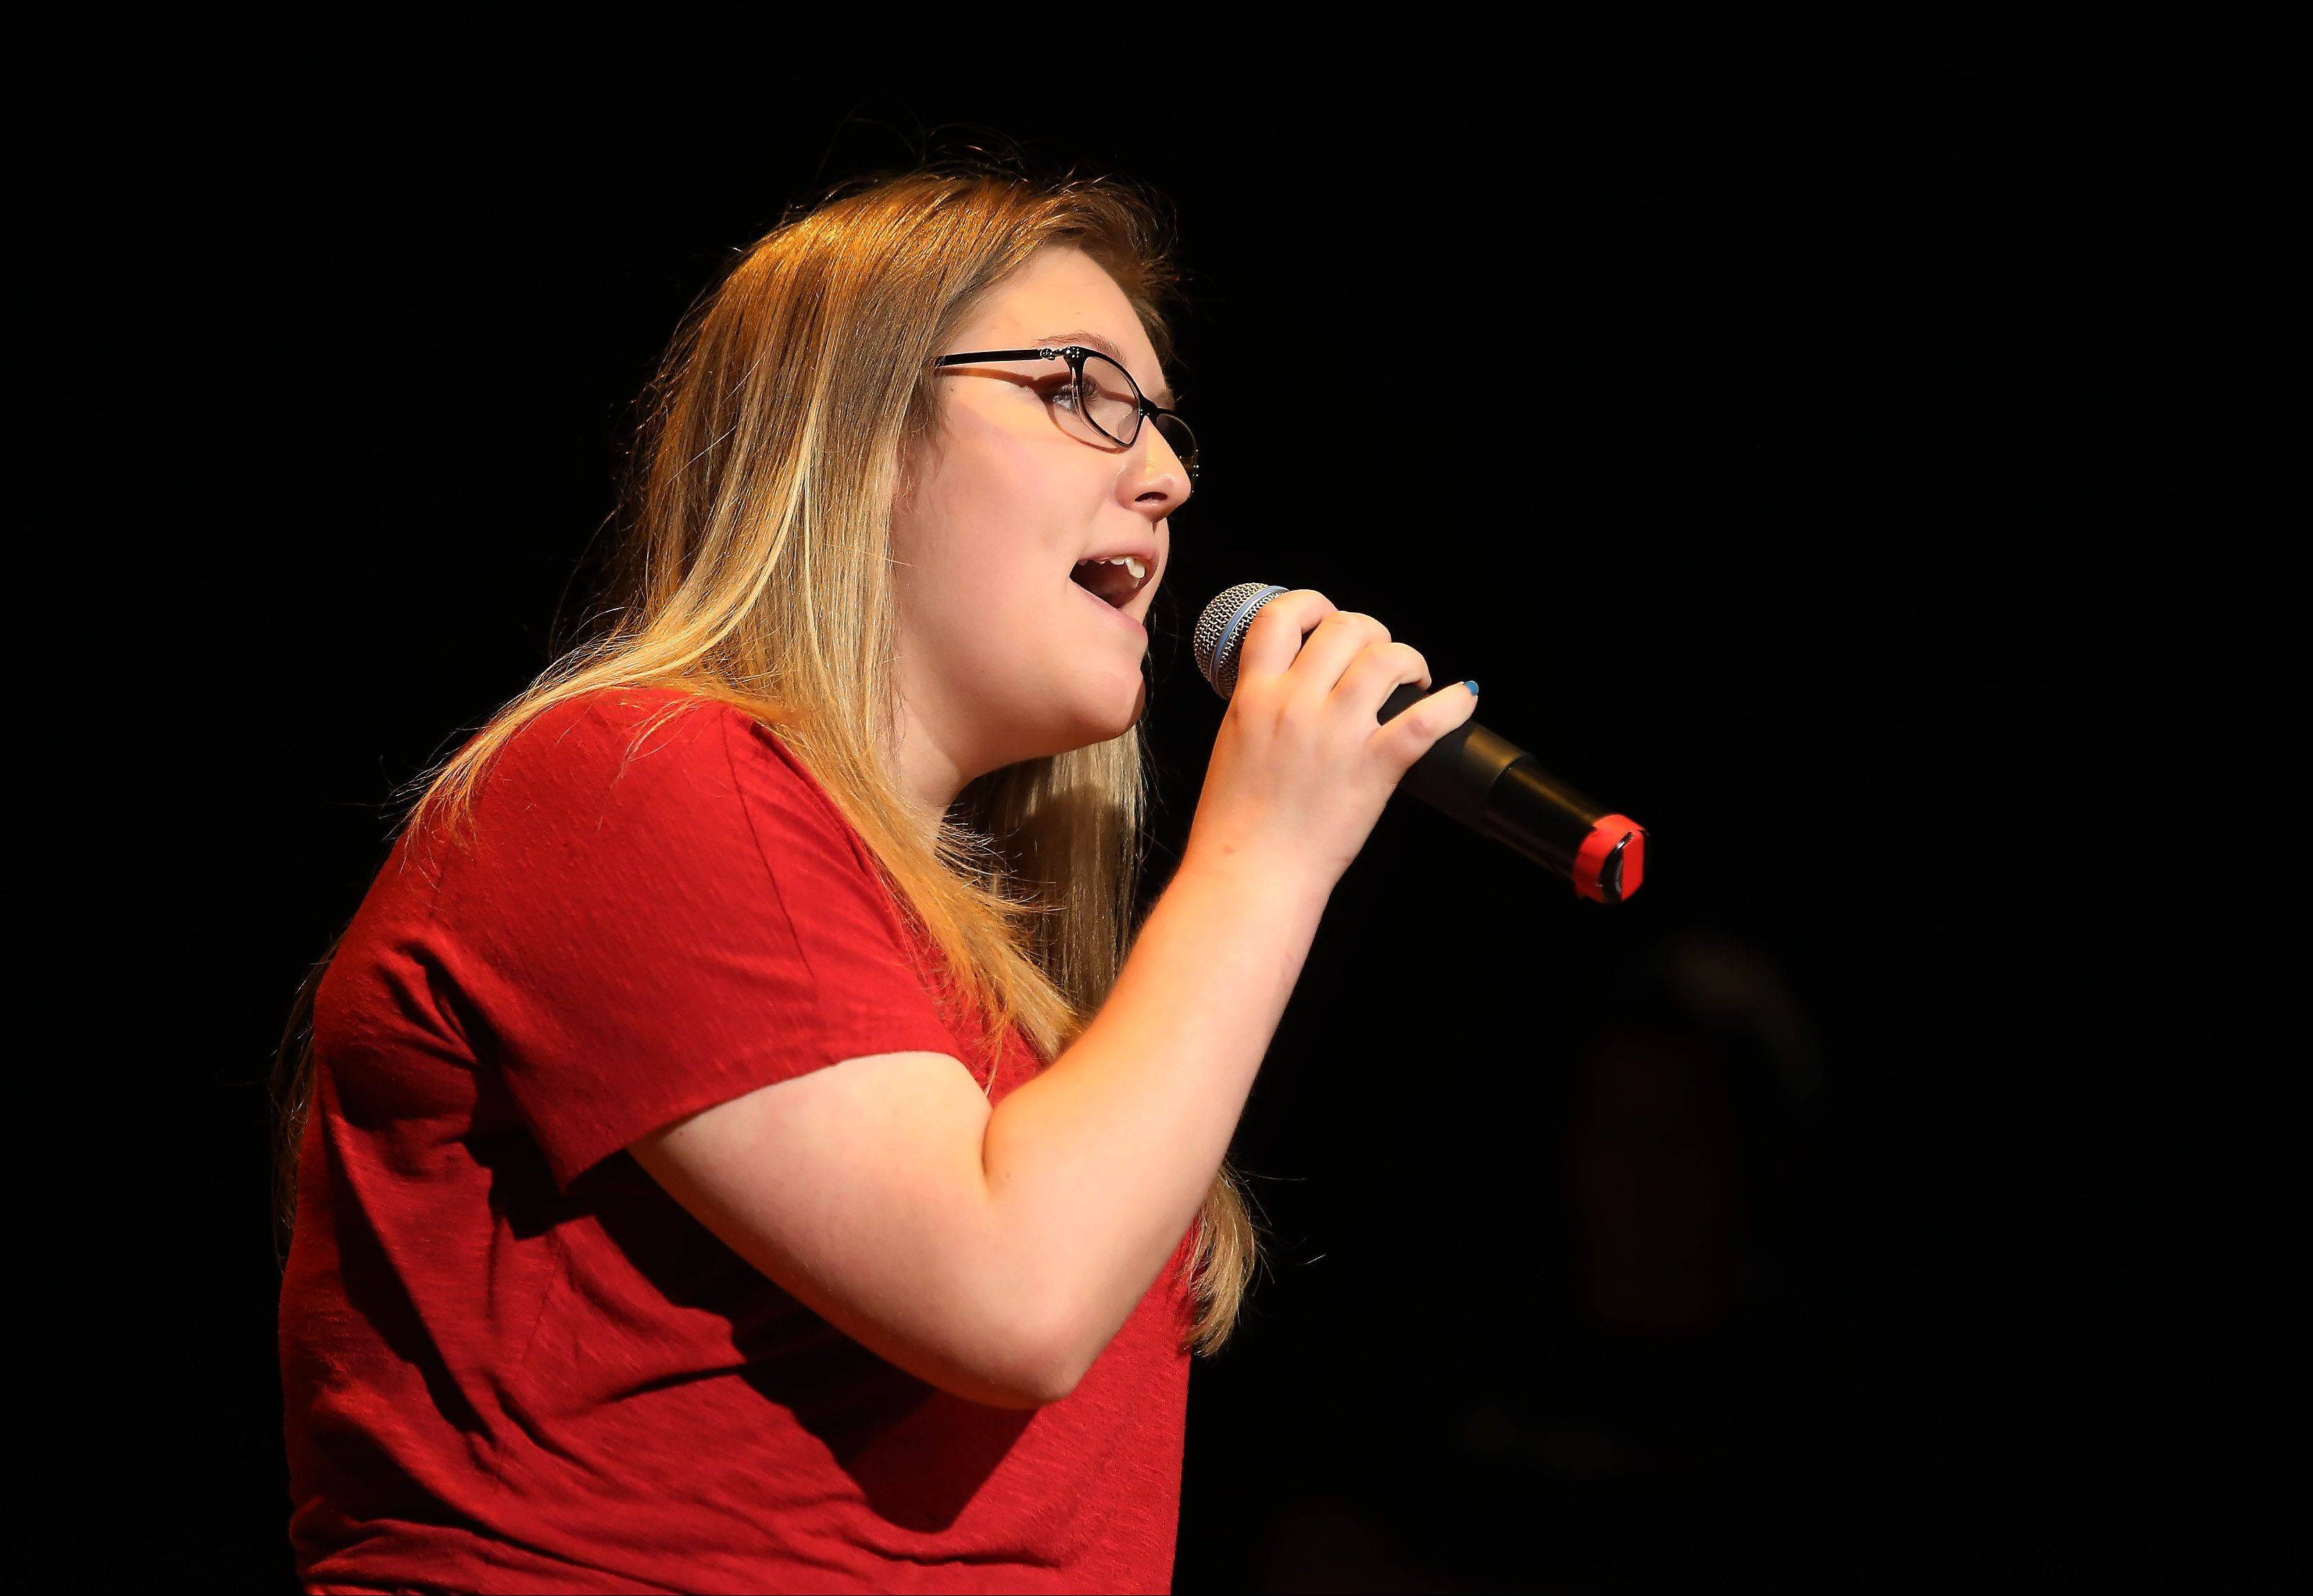 Sarah Norman of Carol Stream sings Sunday during the second round of performances by finalists of the Suburban Chicago's Got Talent competition at the Metropolis Performing Arts Centre in Arlington Heights. The summer long talent contest is presented by the Daily Herald and sponsored by the Arlington Heights Chamber of Commerce.